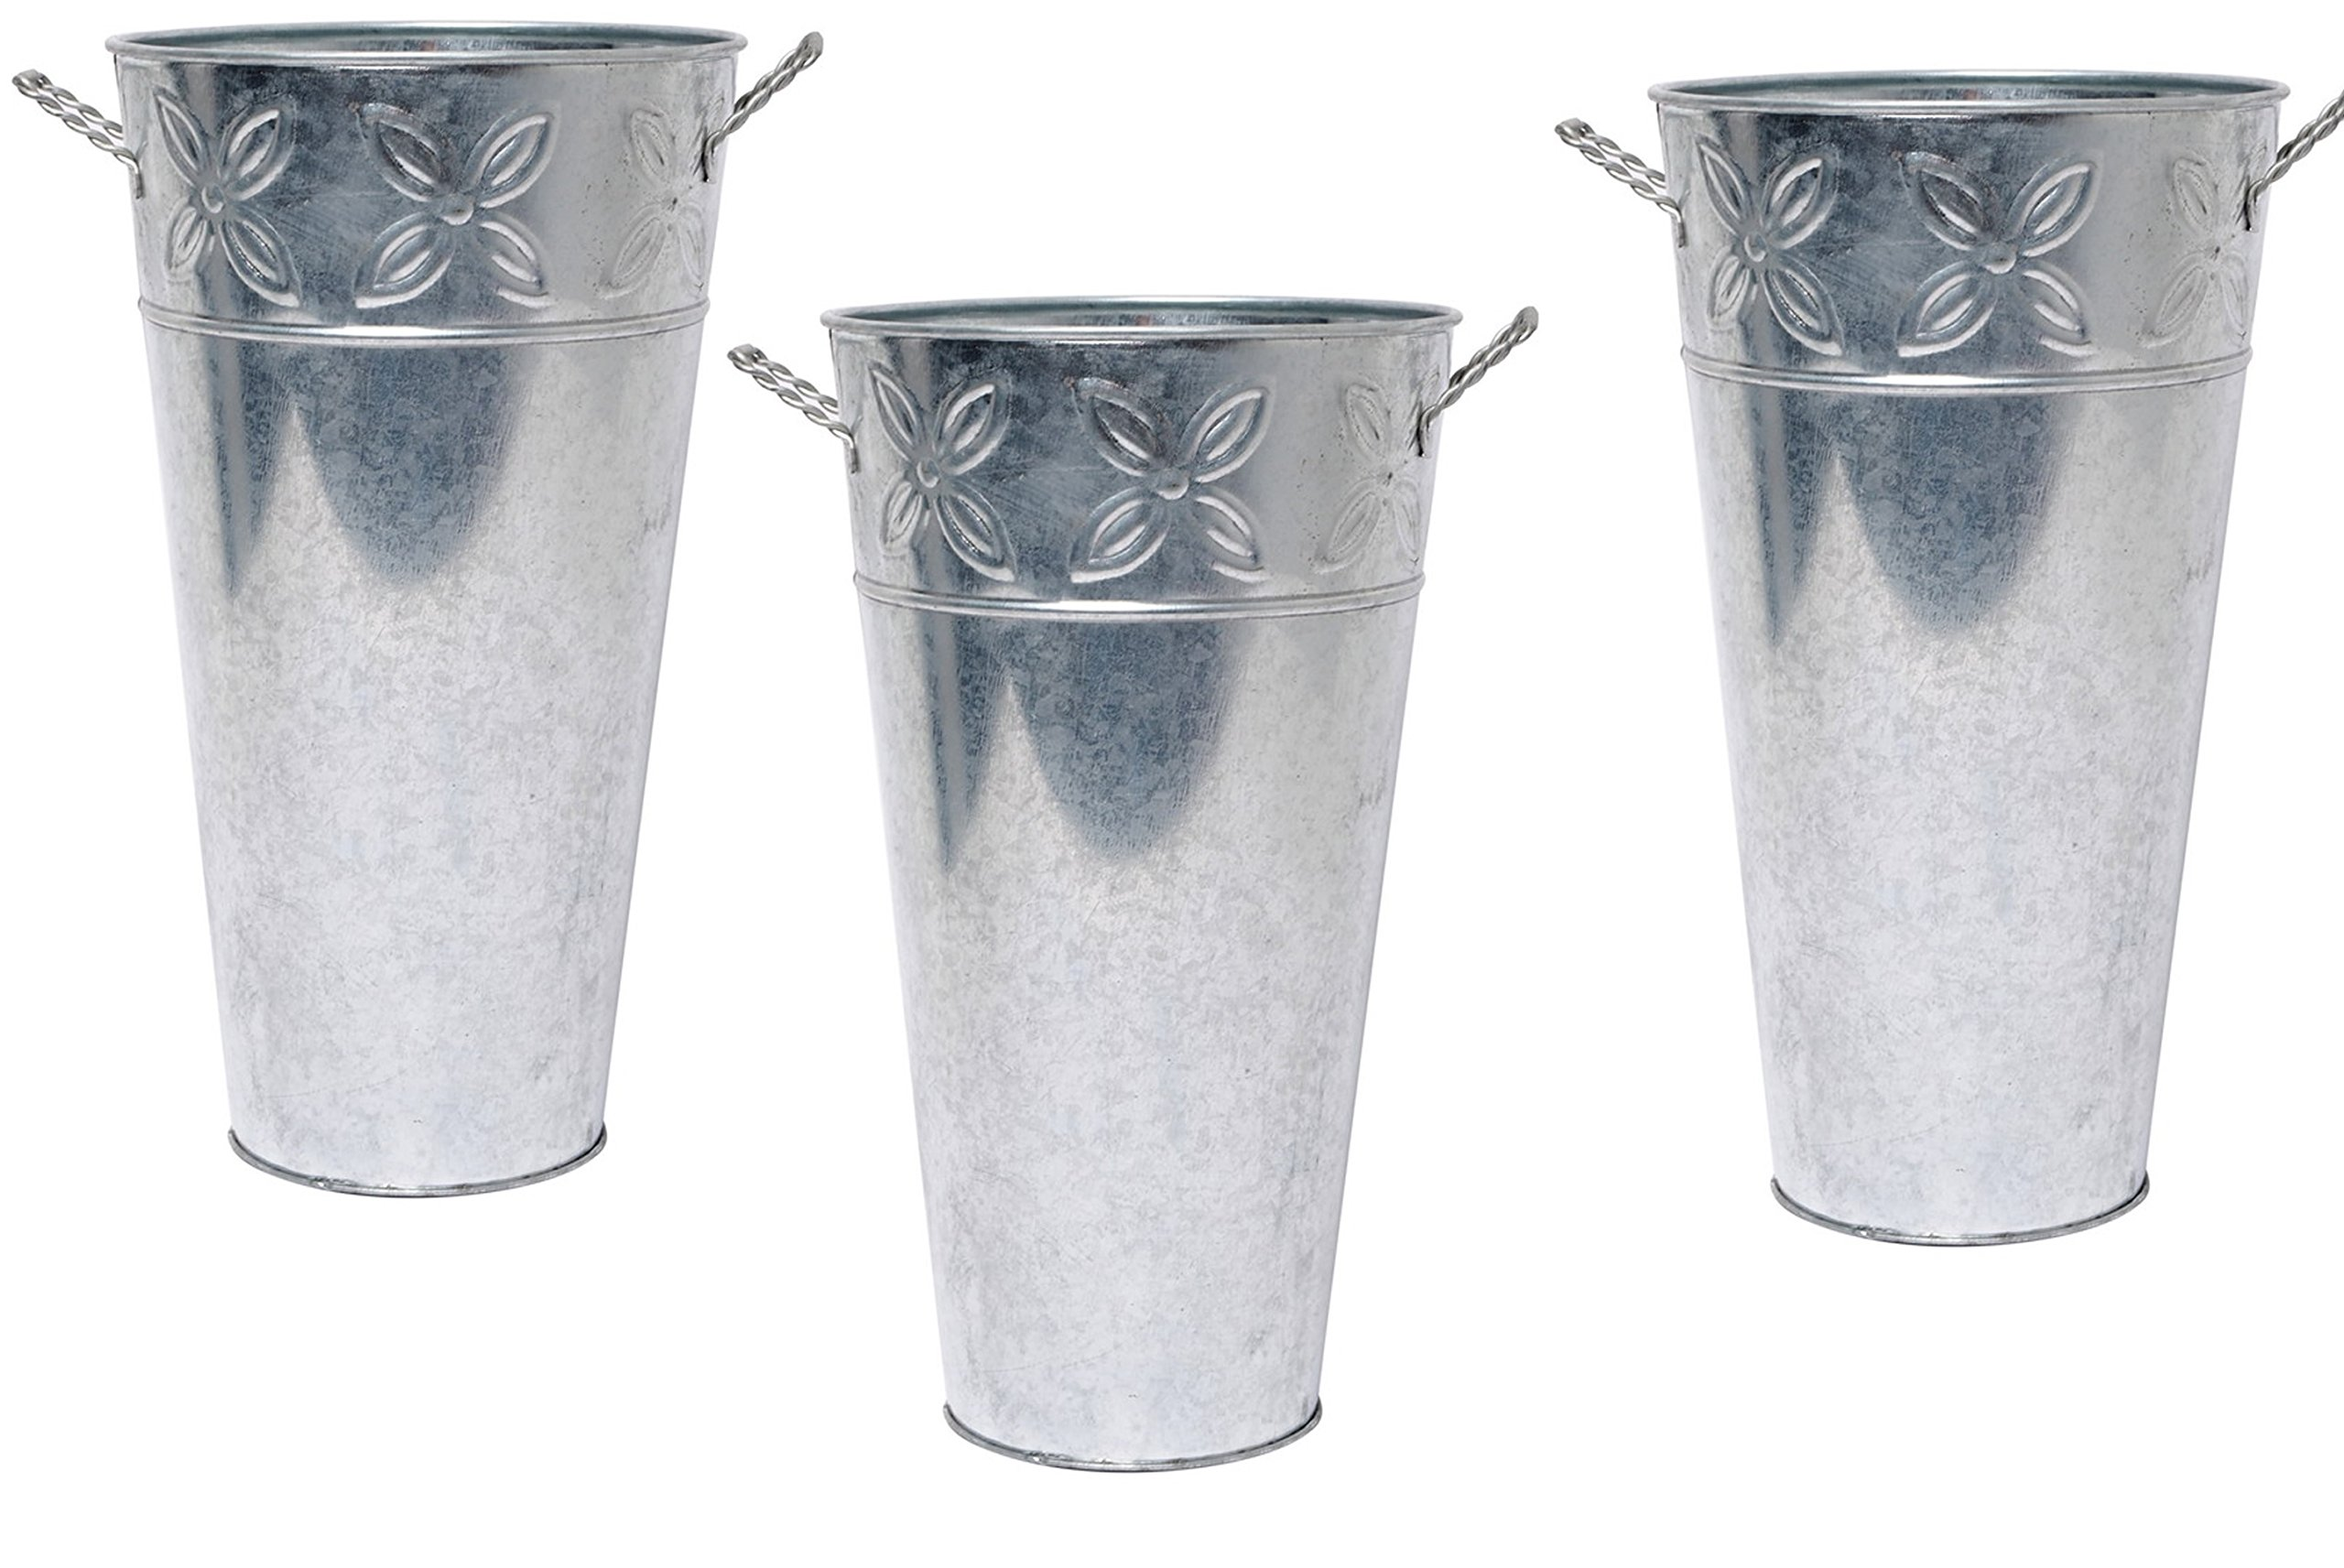 Hosley Set of 3 Galvanized Vases 12'' High Each. French Bucket Design. Ideal Gift for Wedding, Special Events, Aromatherapy, Spa, Reiki, Meditation. O3